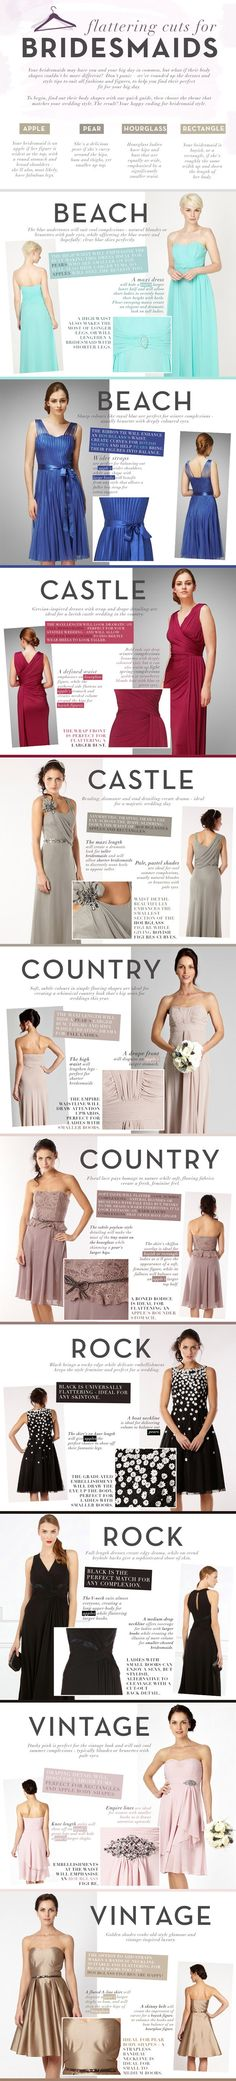 Flattering Cuts for Bridesmaids | Infographic by Debenhams